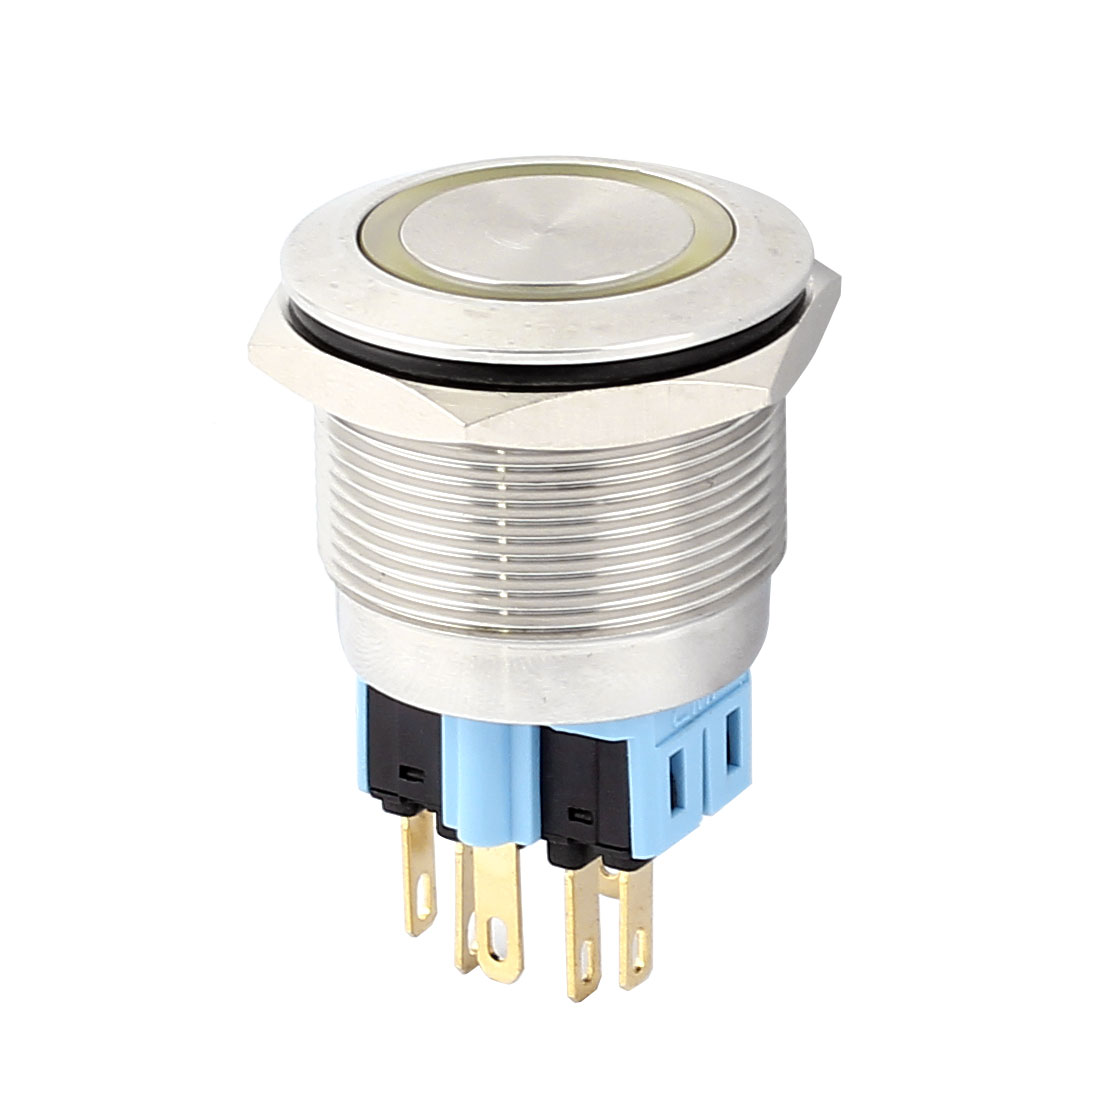 DC 12V 20mm Yellow LED Light 25mm Mounted Thread 6 Pins DPST NO/NC Latching Push Button Swith